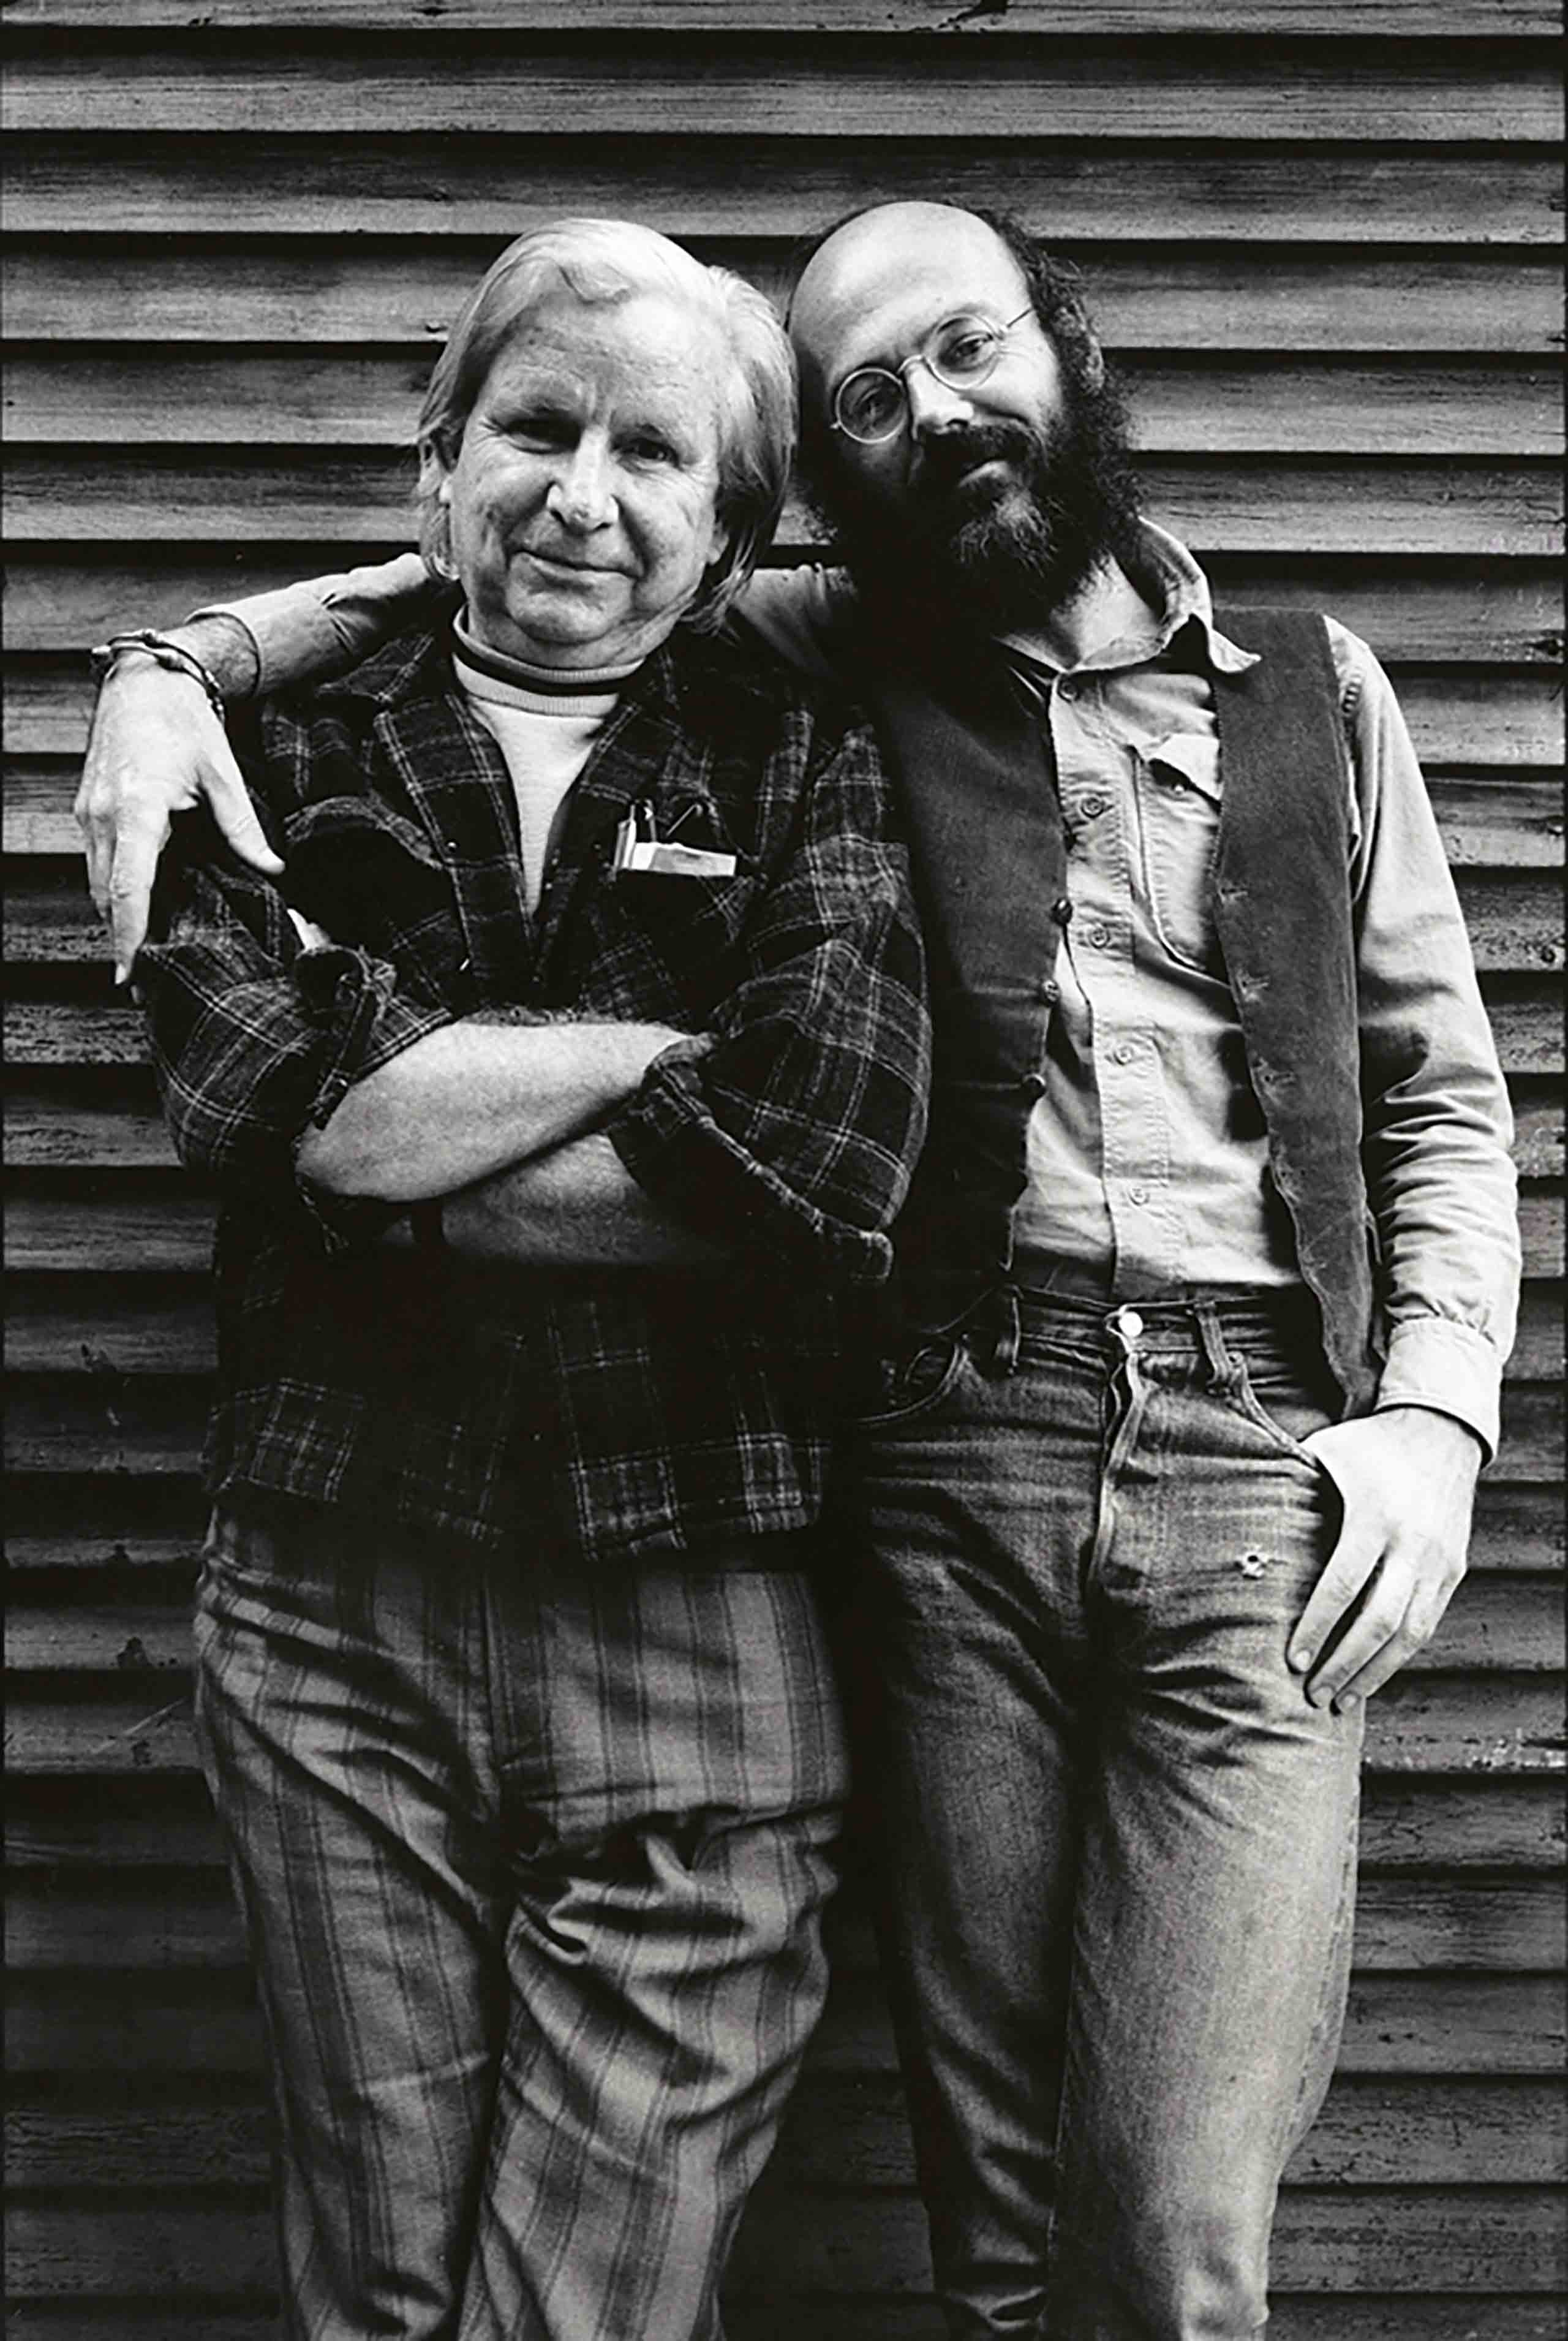 Don Kilhefner and Morris Kight at the Gay Community Services Center, Los Angeles, 1972.